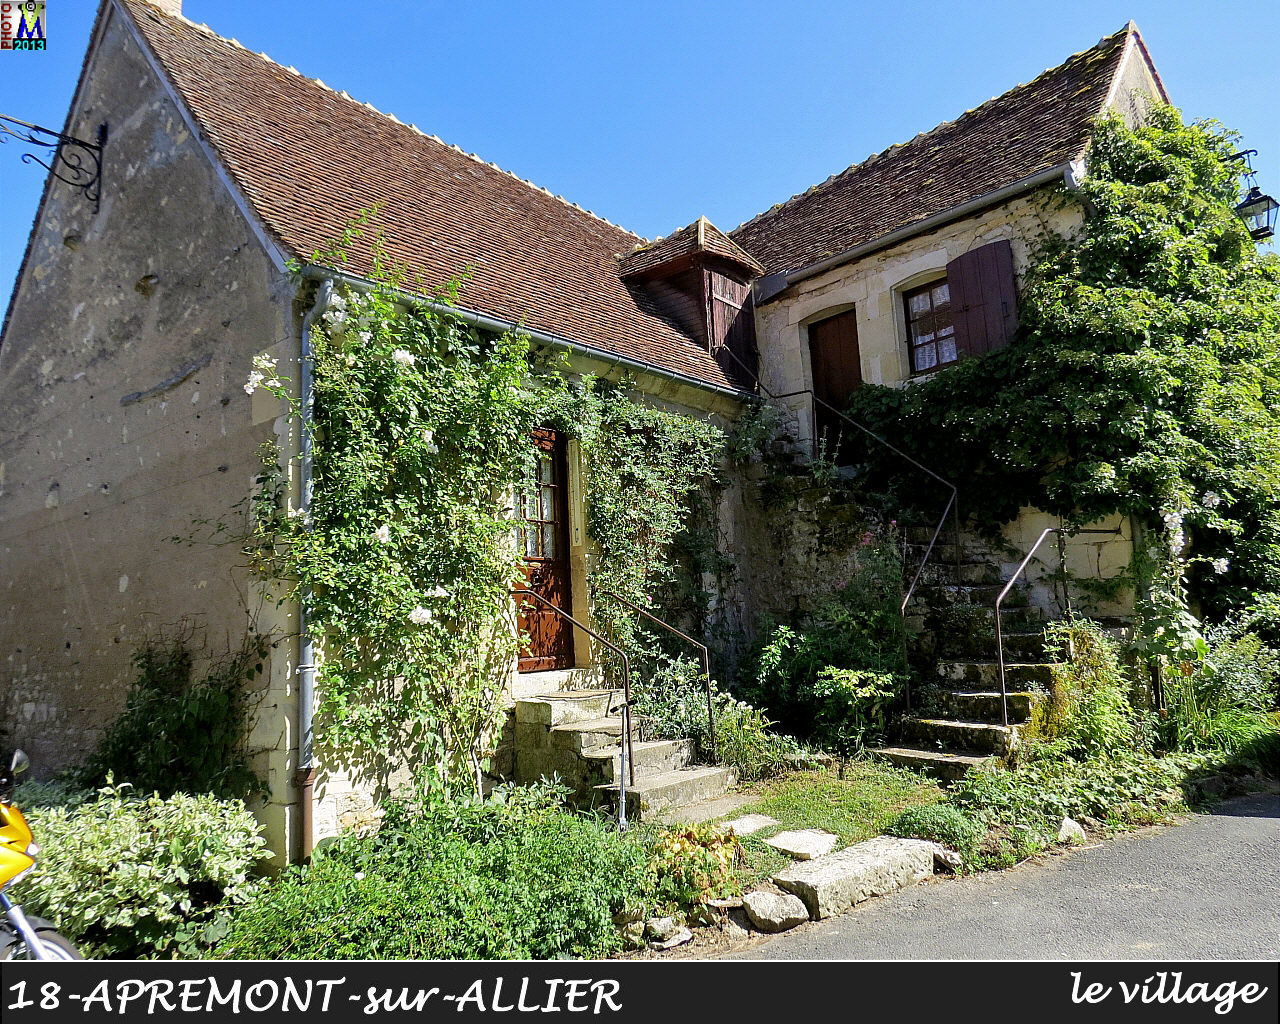 18APREMONT-ALLIER_village_112.jpg